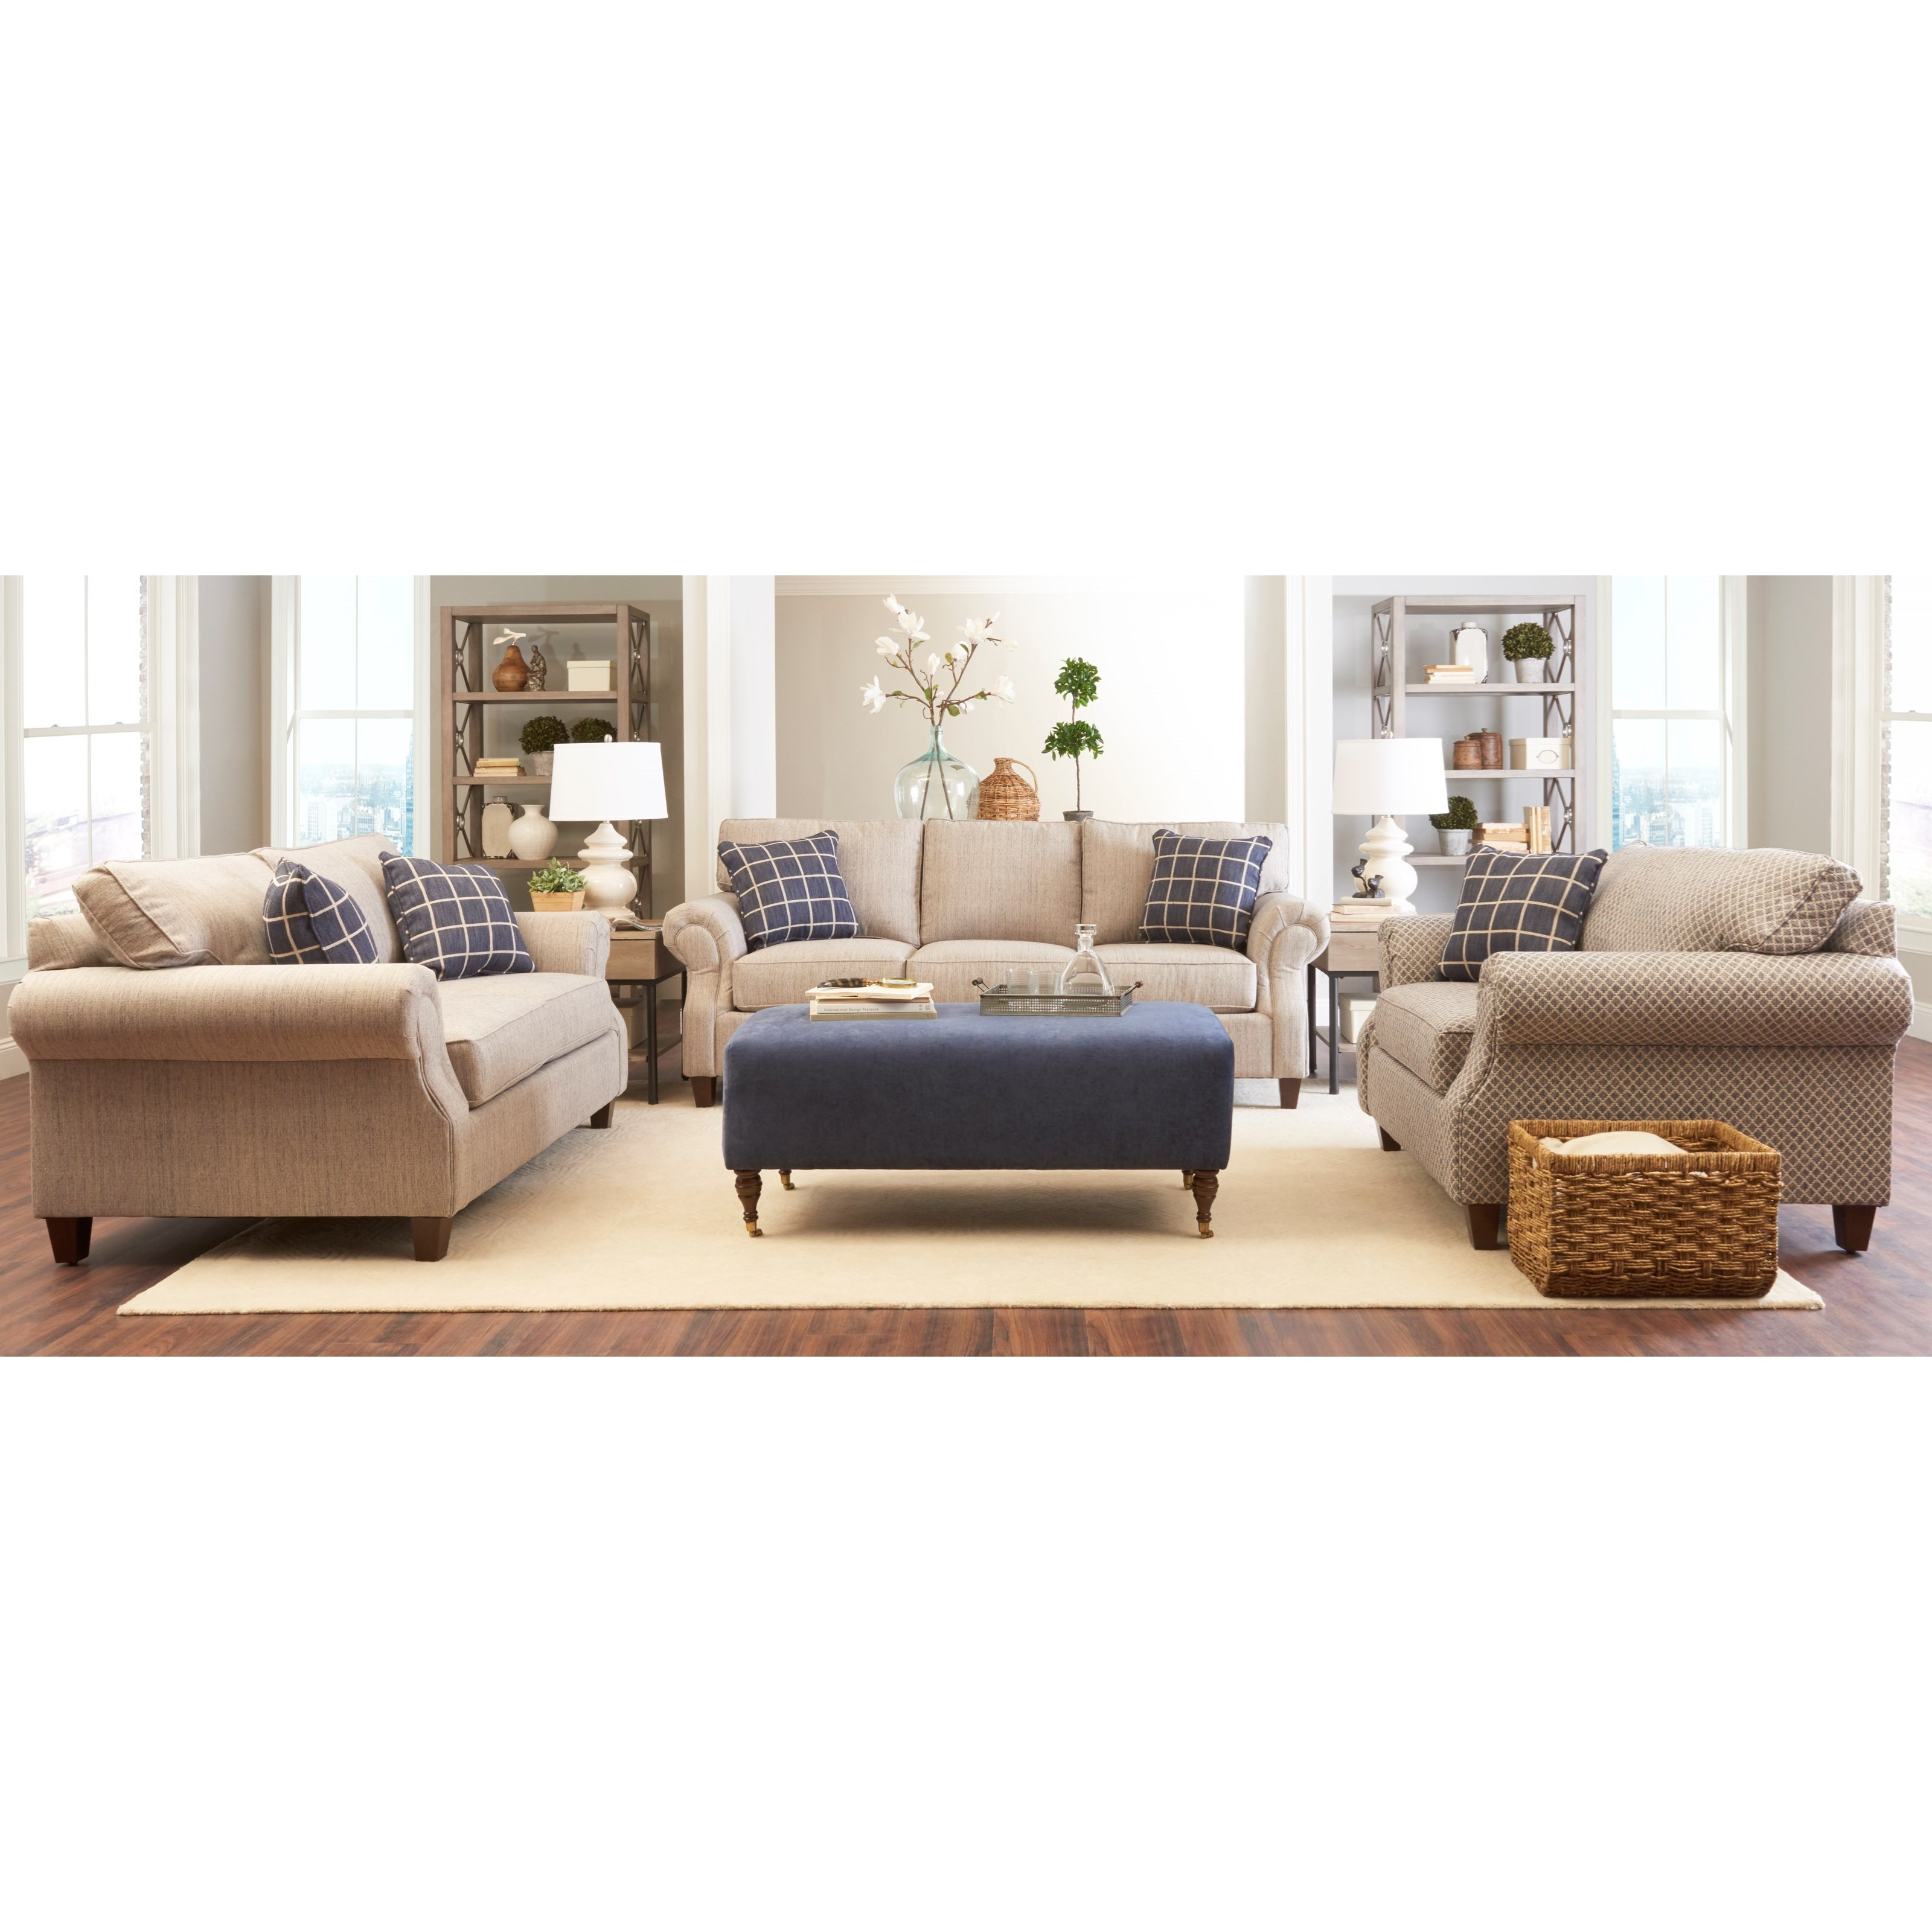 Serena Living Room Group by Klaussner at Northeast Factory Direct